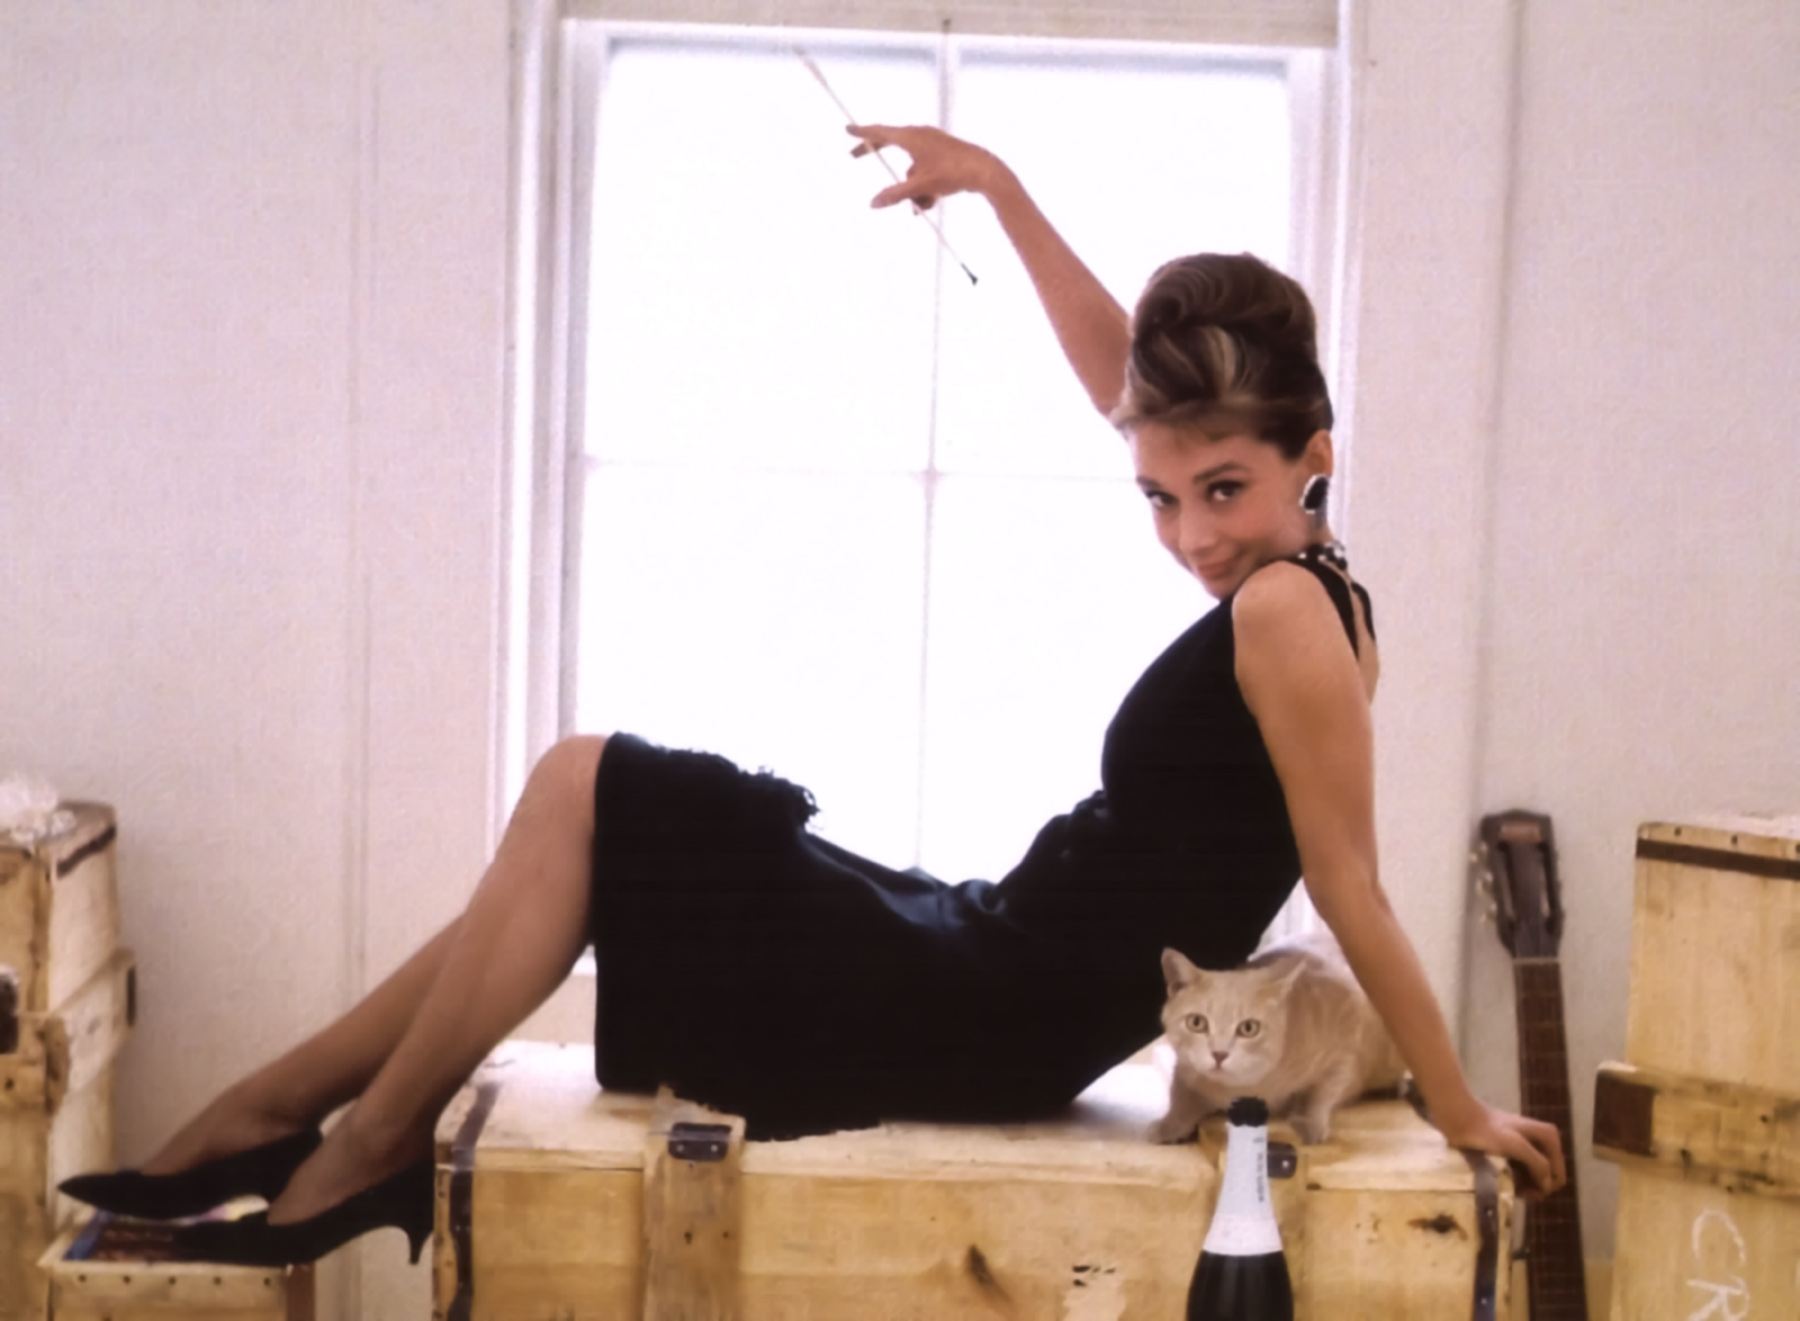 Sew Iconic - Audrey Hepburn in Breakfast at Tiffany's